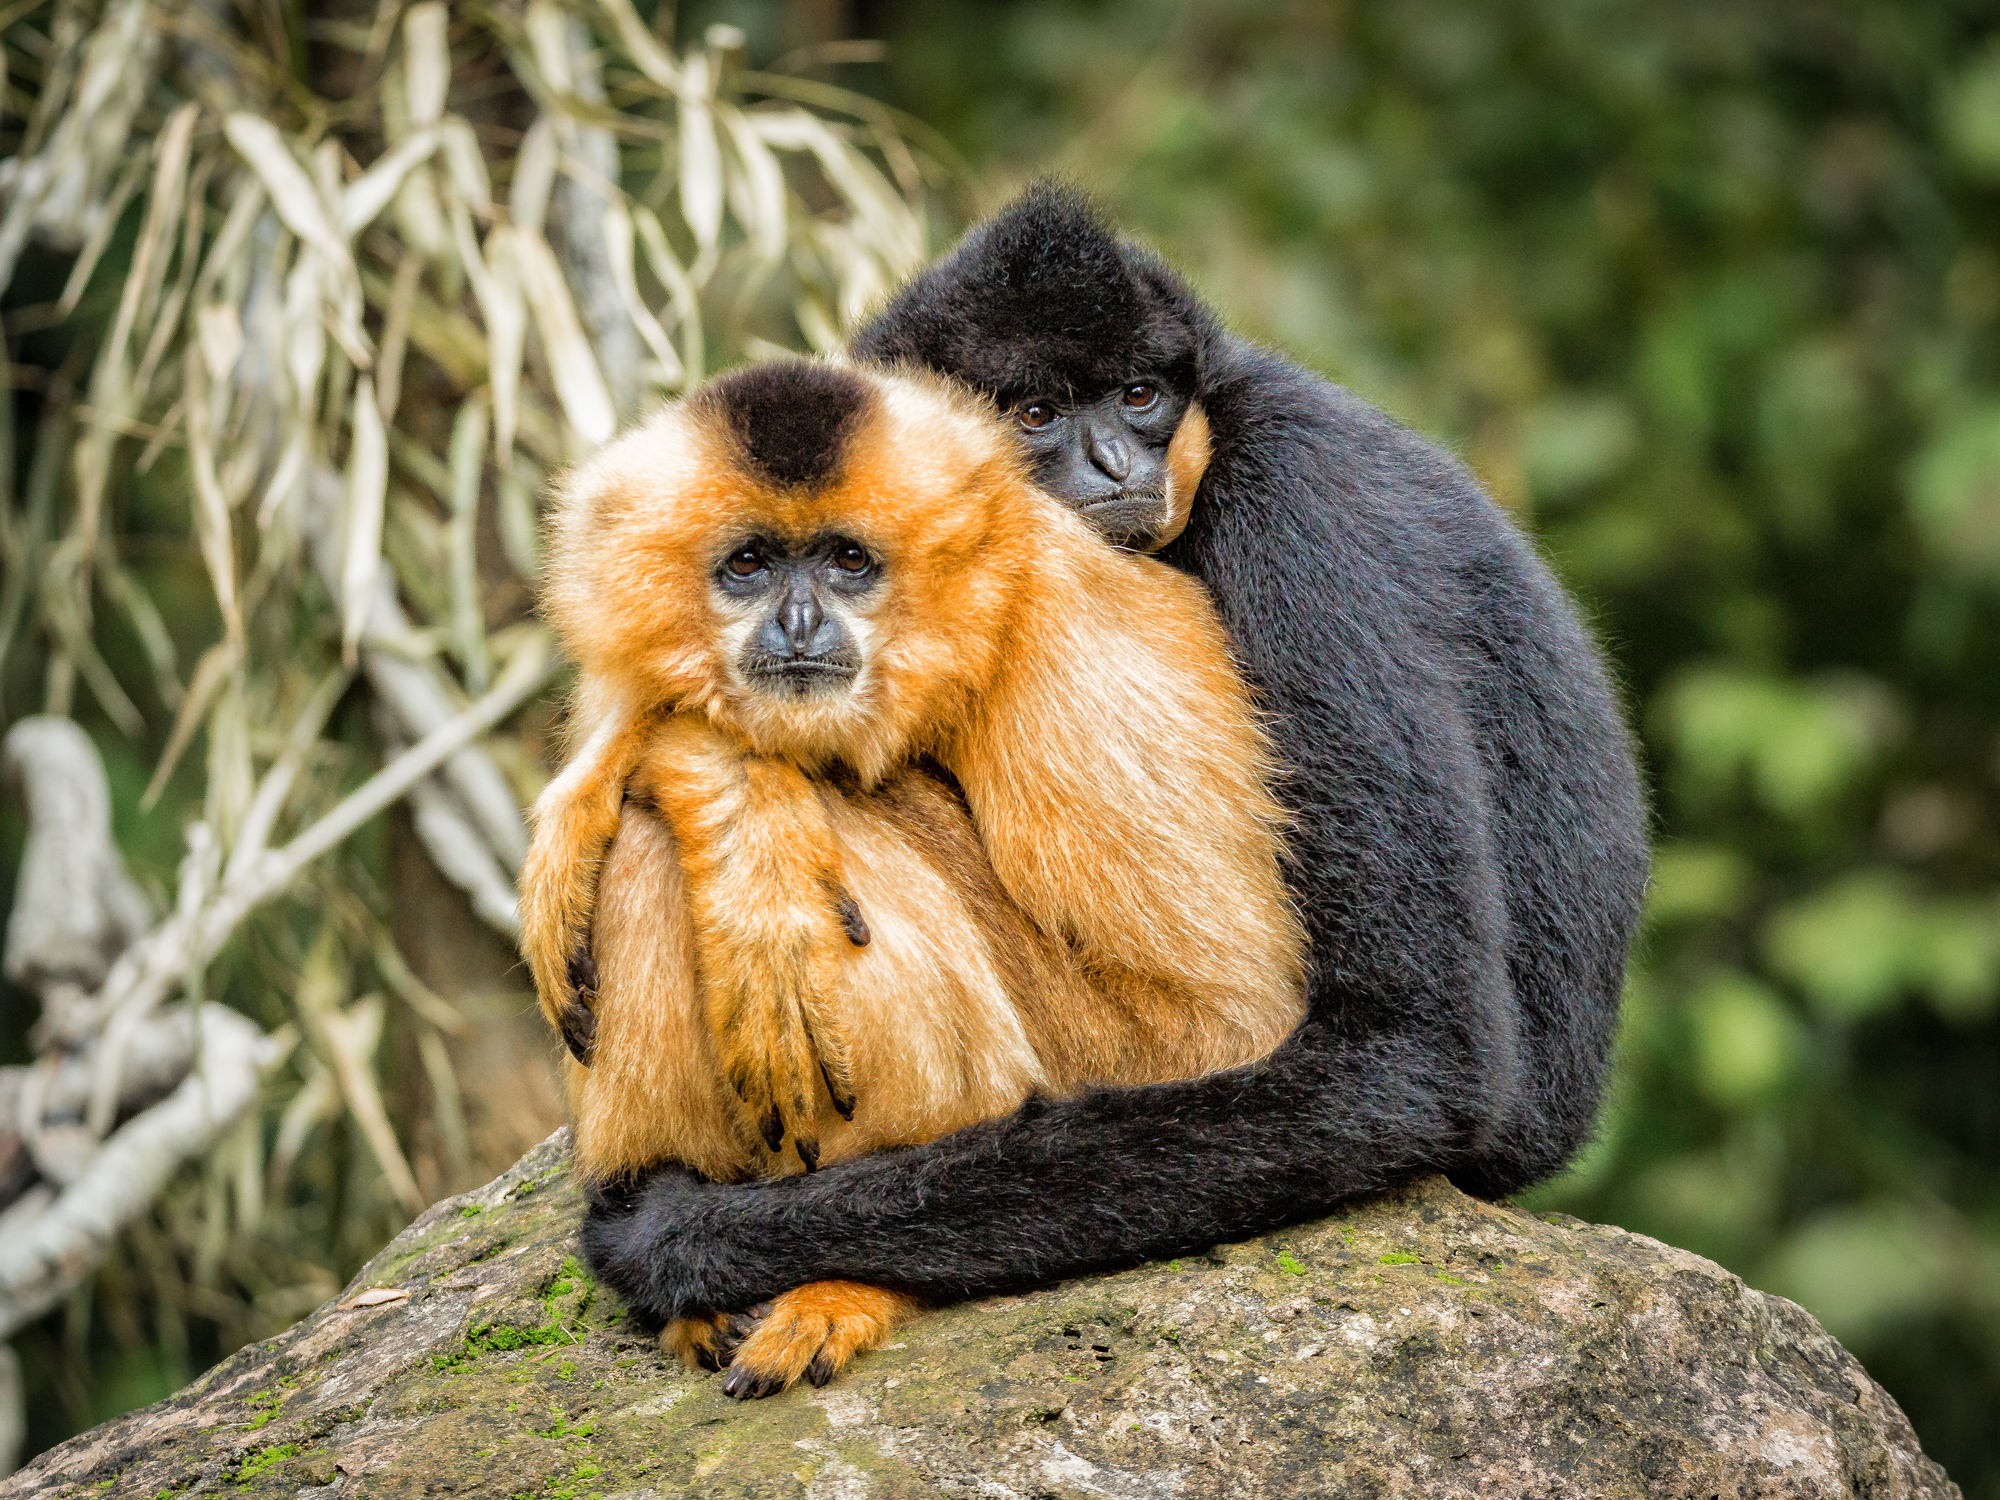 Gibbons, a type of ape, mate for life. (Rüdiger Katterwe / EyeEm/ Getty Images)